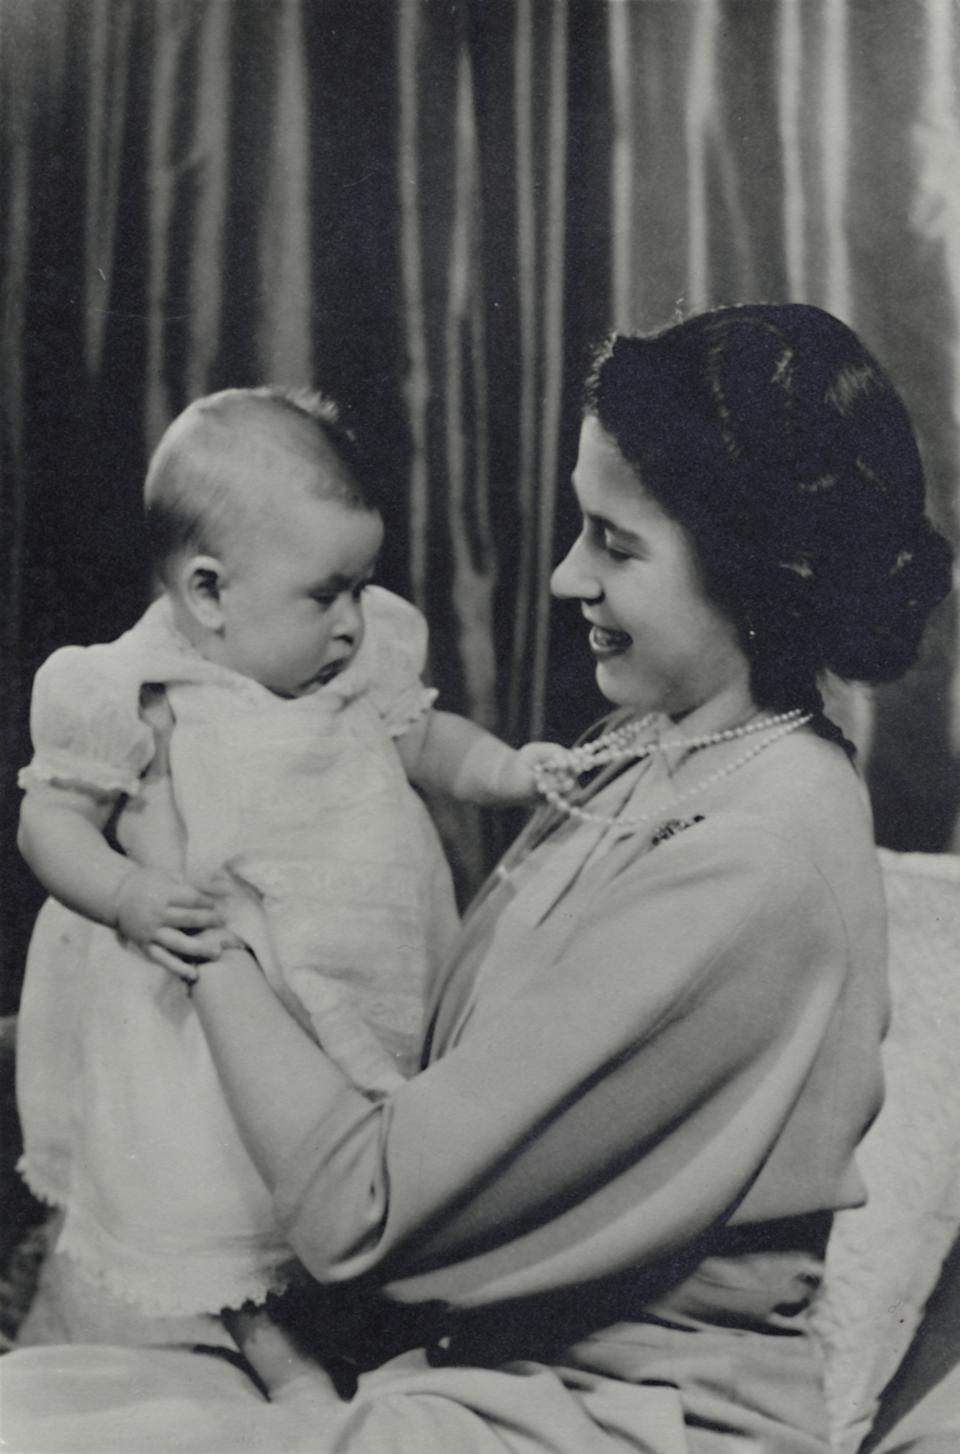 Then-Princess Elizabeth and Prince Charles in 1948.